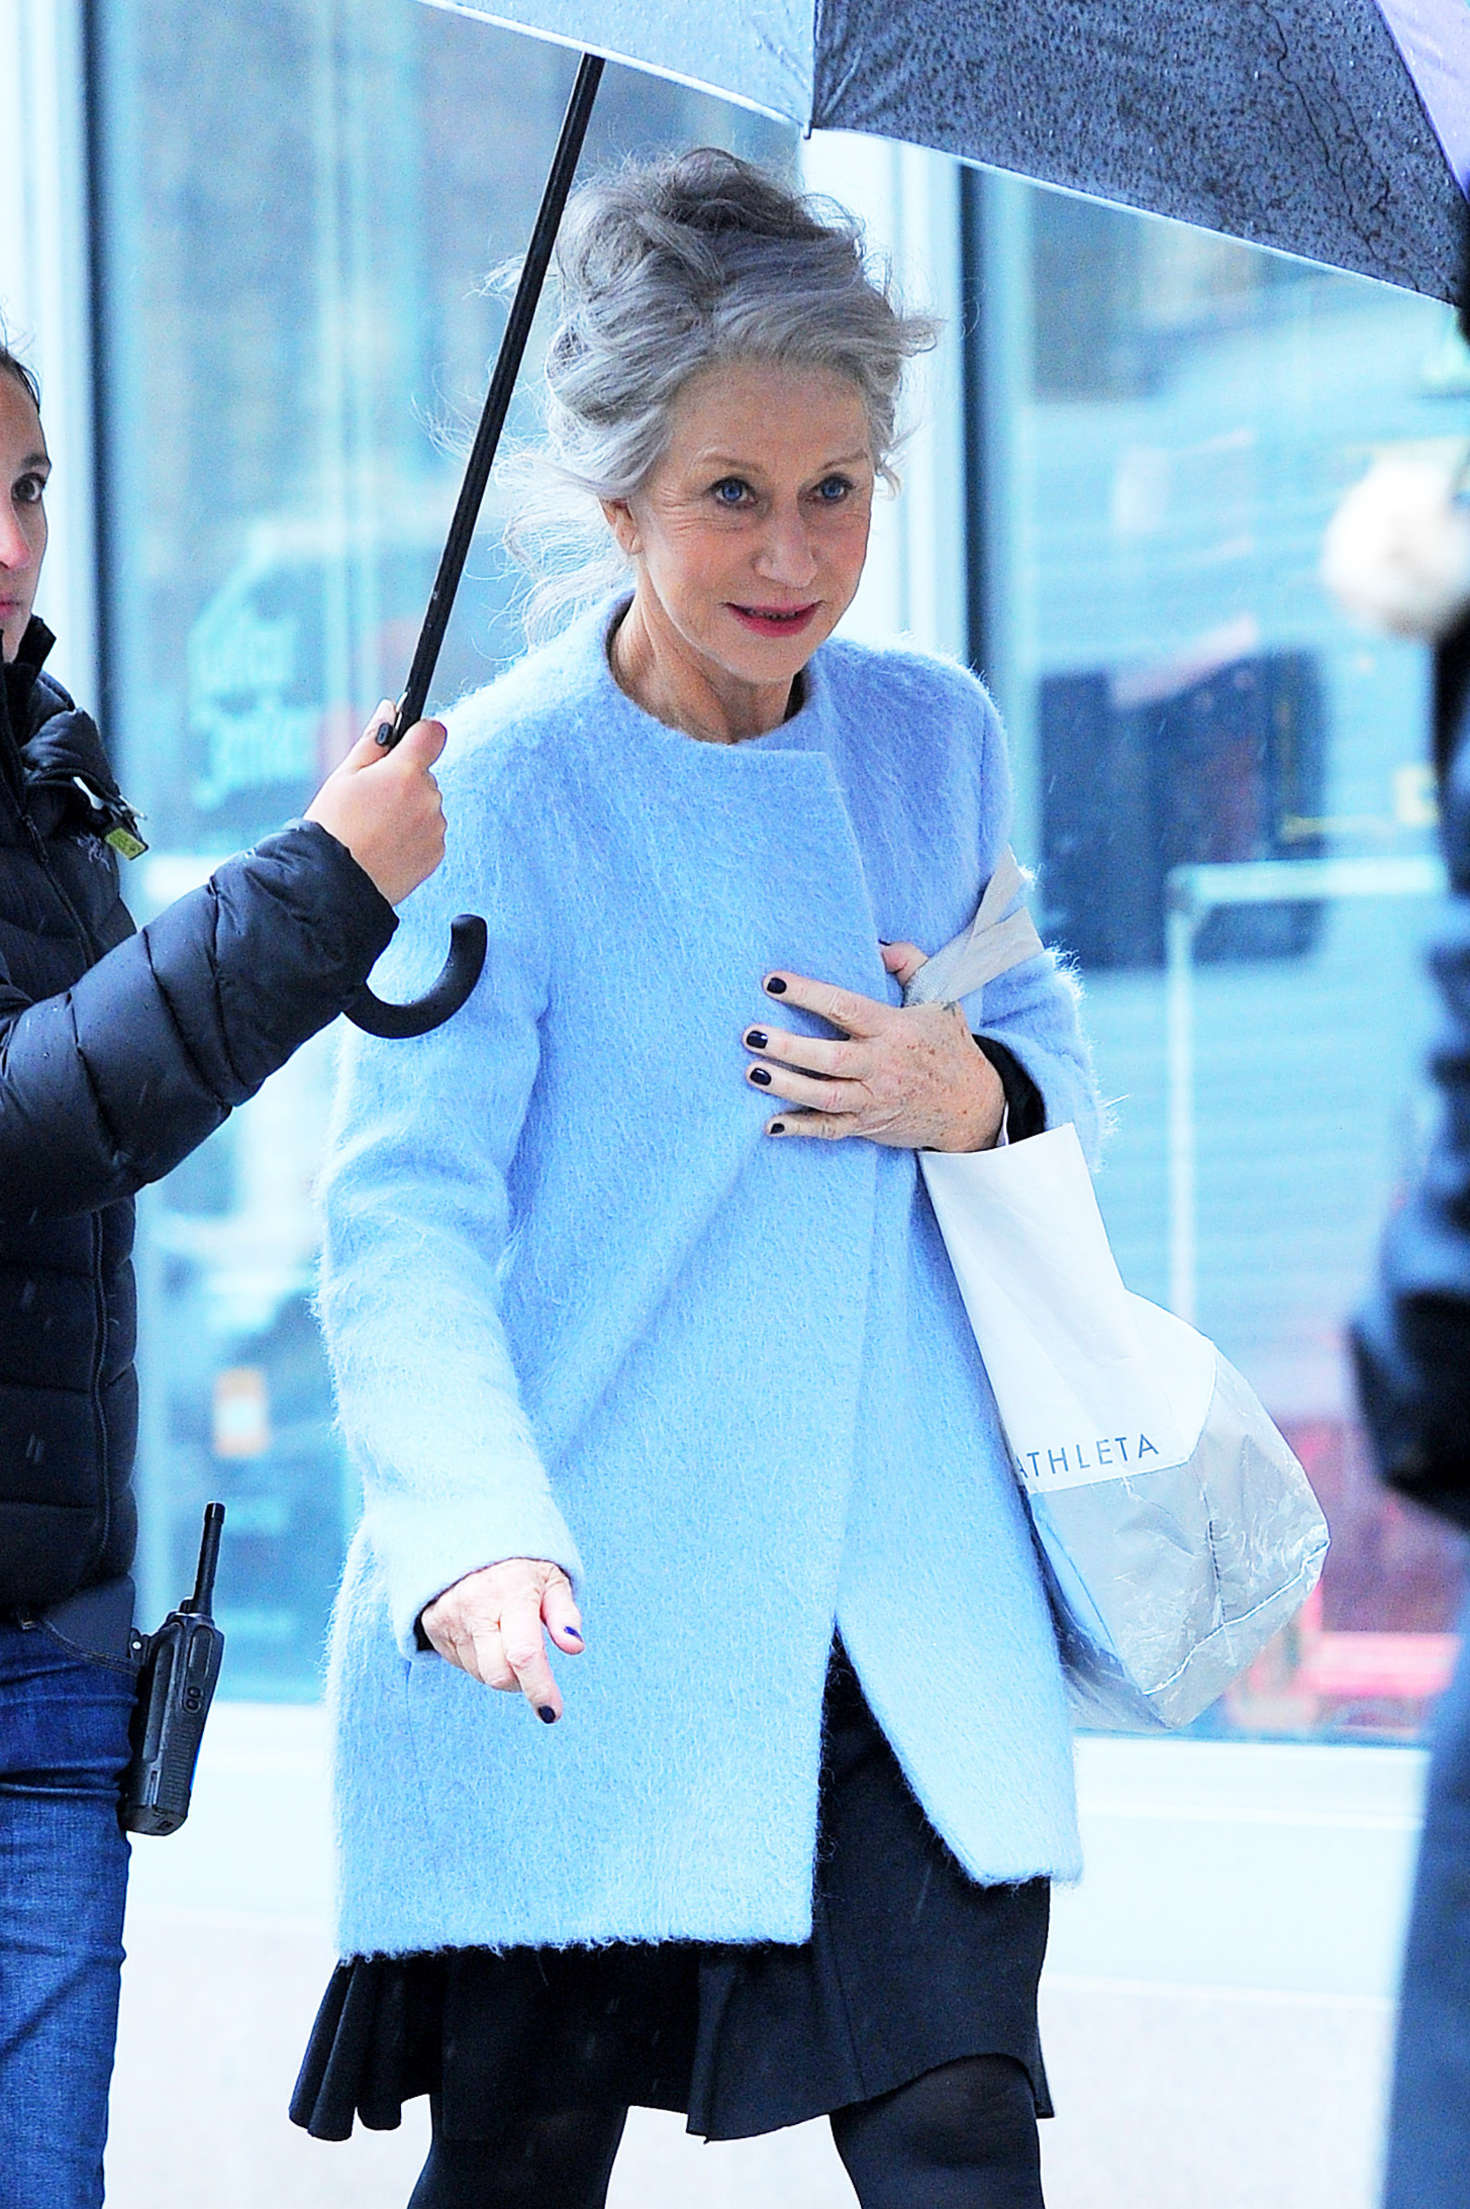 Helen Mirren on the set of 'Collateral Beauty' in New York